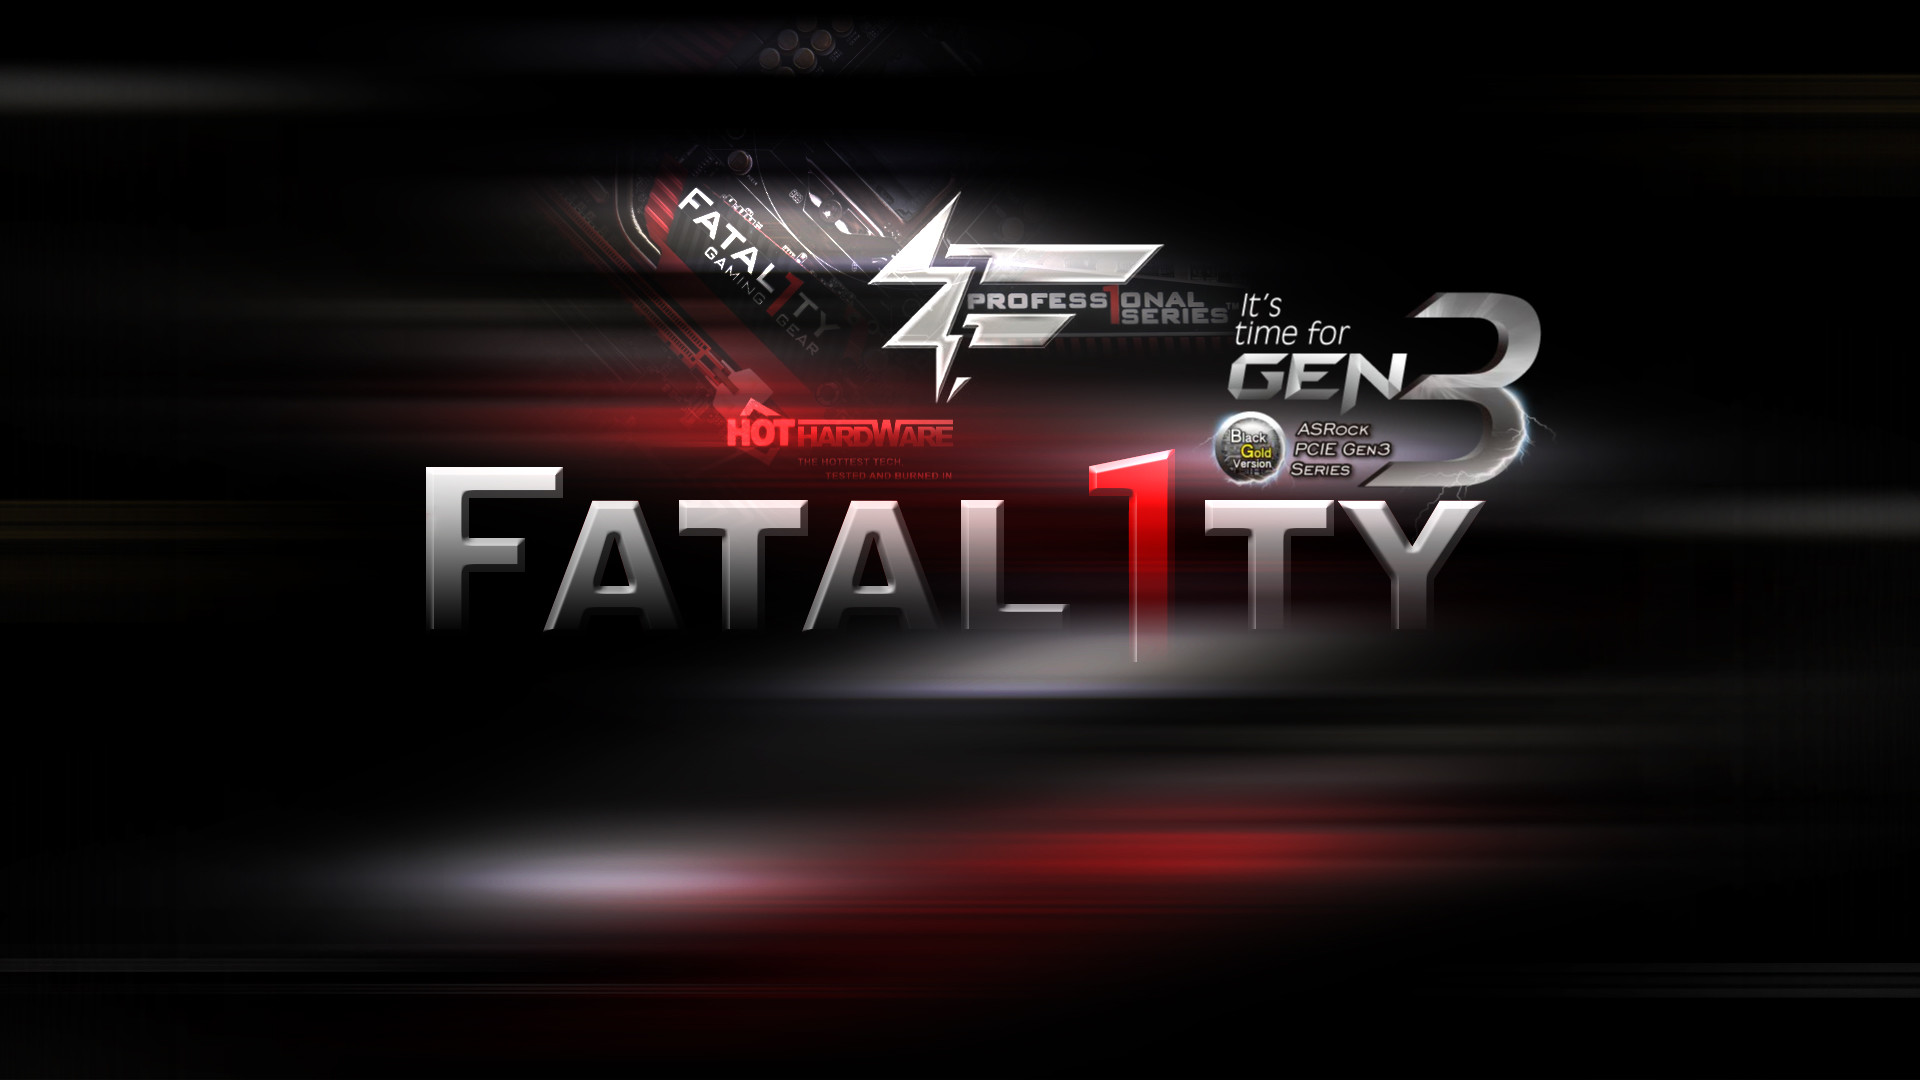 1920x1080 TheOverclocker ASRock Fatal1ty Gaming Motherboard Series 79 asrock wallpaper  Pictures ...